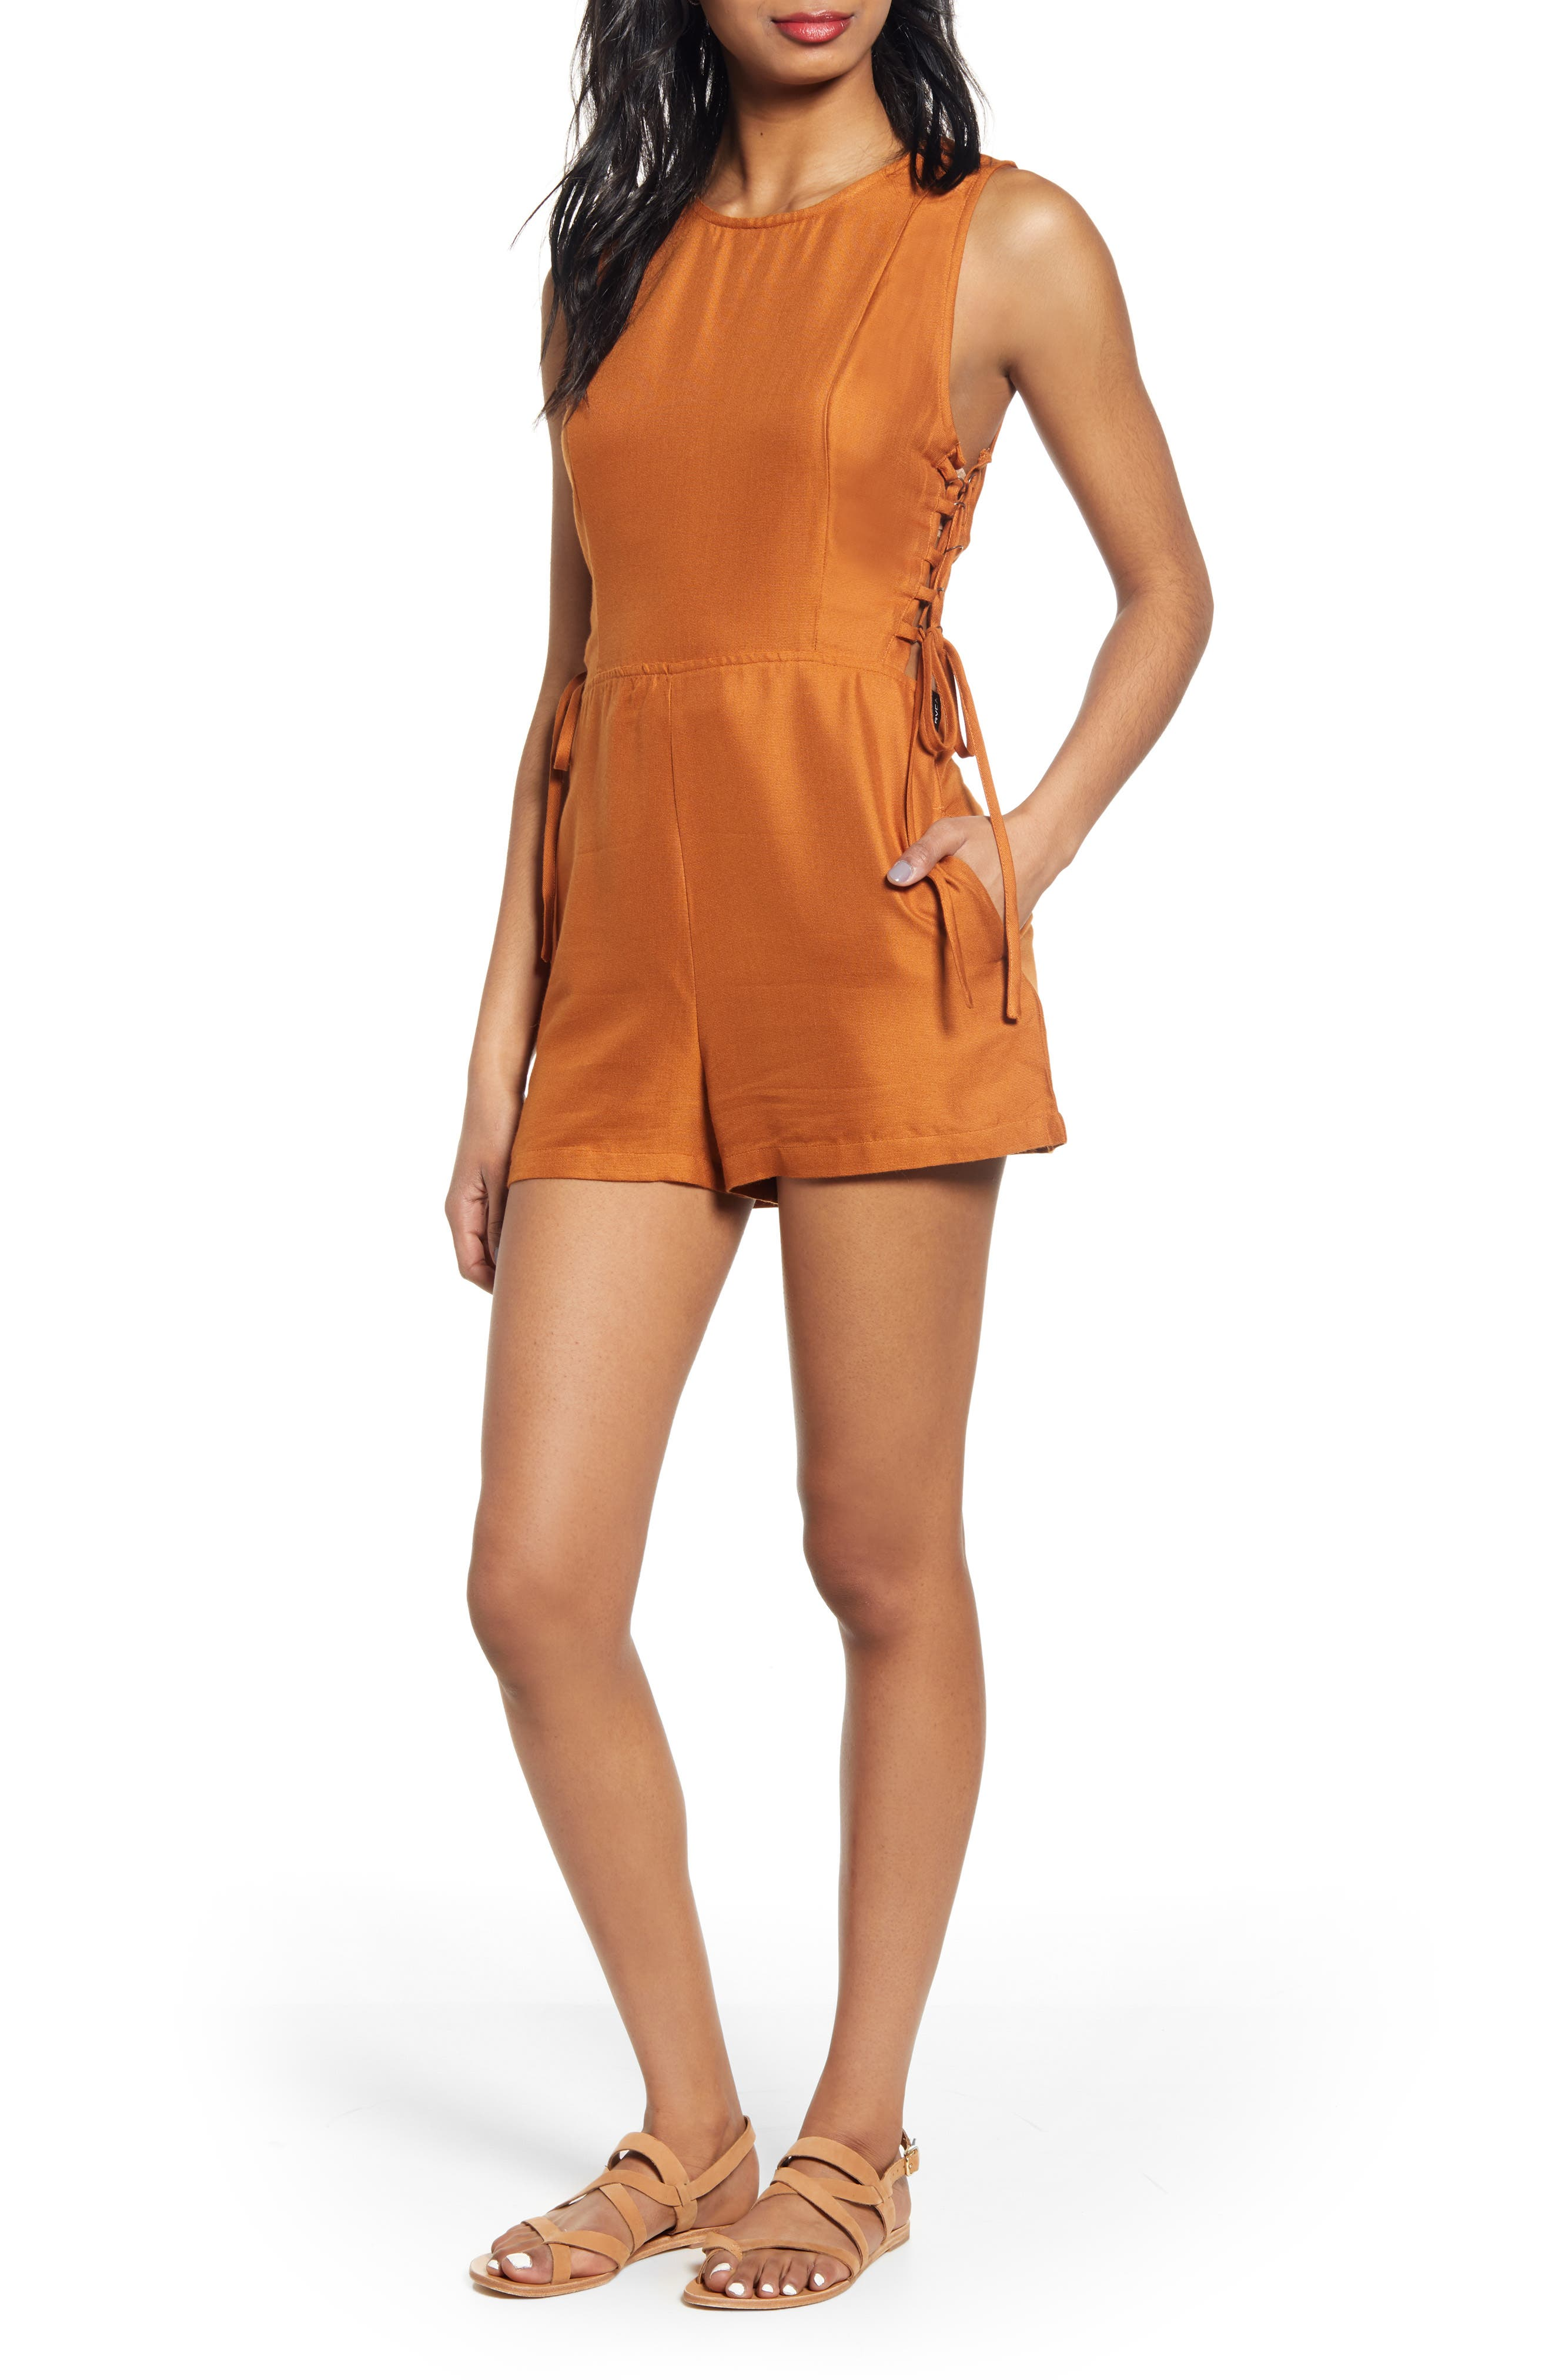 RVCA, Freddie Lace-Up Romper, Main thumbnail 1, color, GINGER